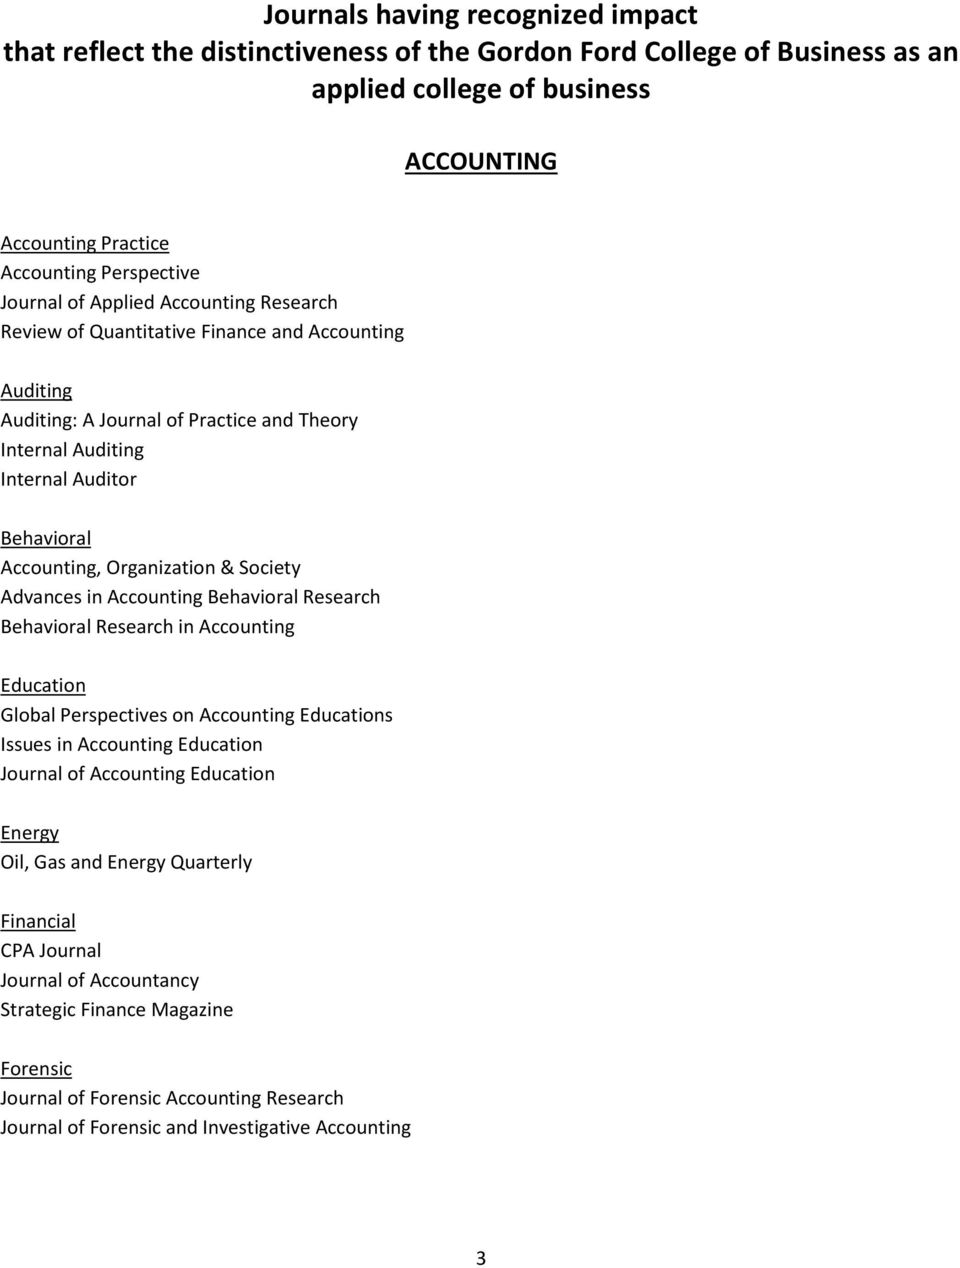 Organization & Society Advances in Accounting Behavioral Research Behavioral Research in Accounting Education Global Perspectives on Accounting Educations Issues in Accounting Education Journal of